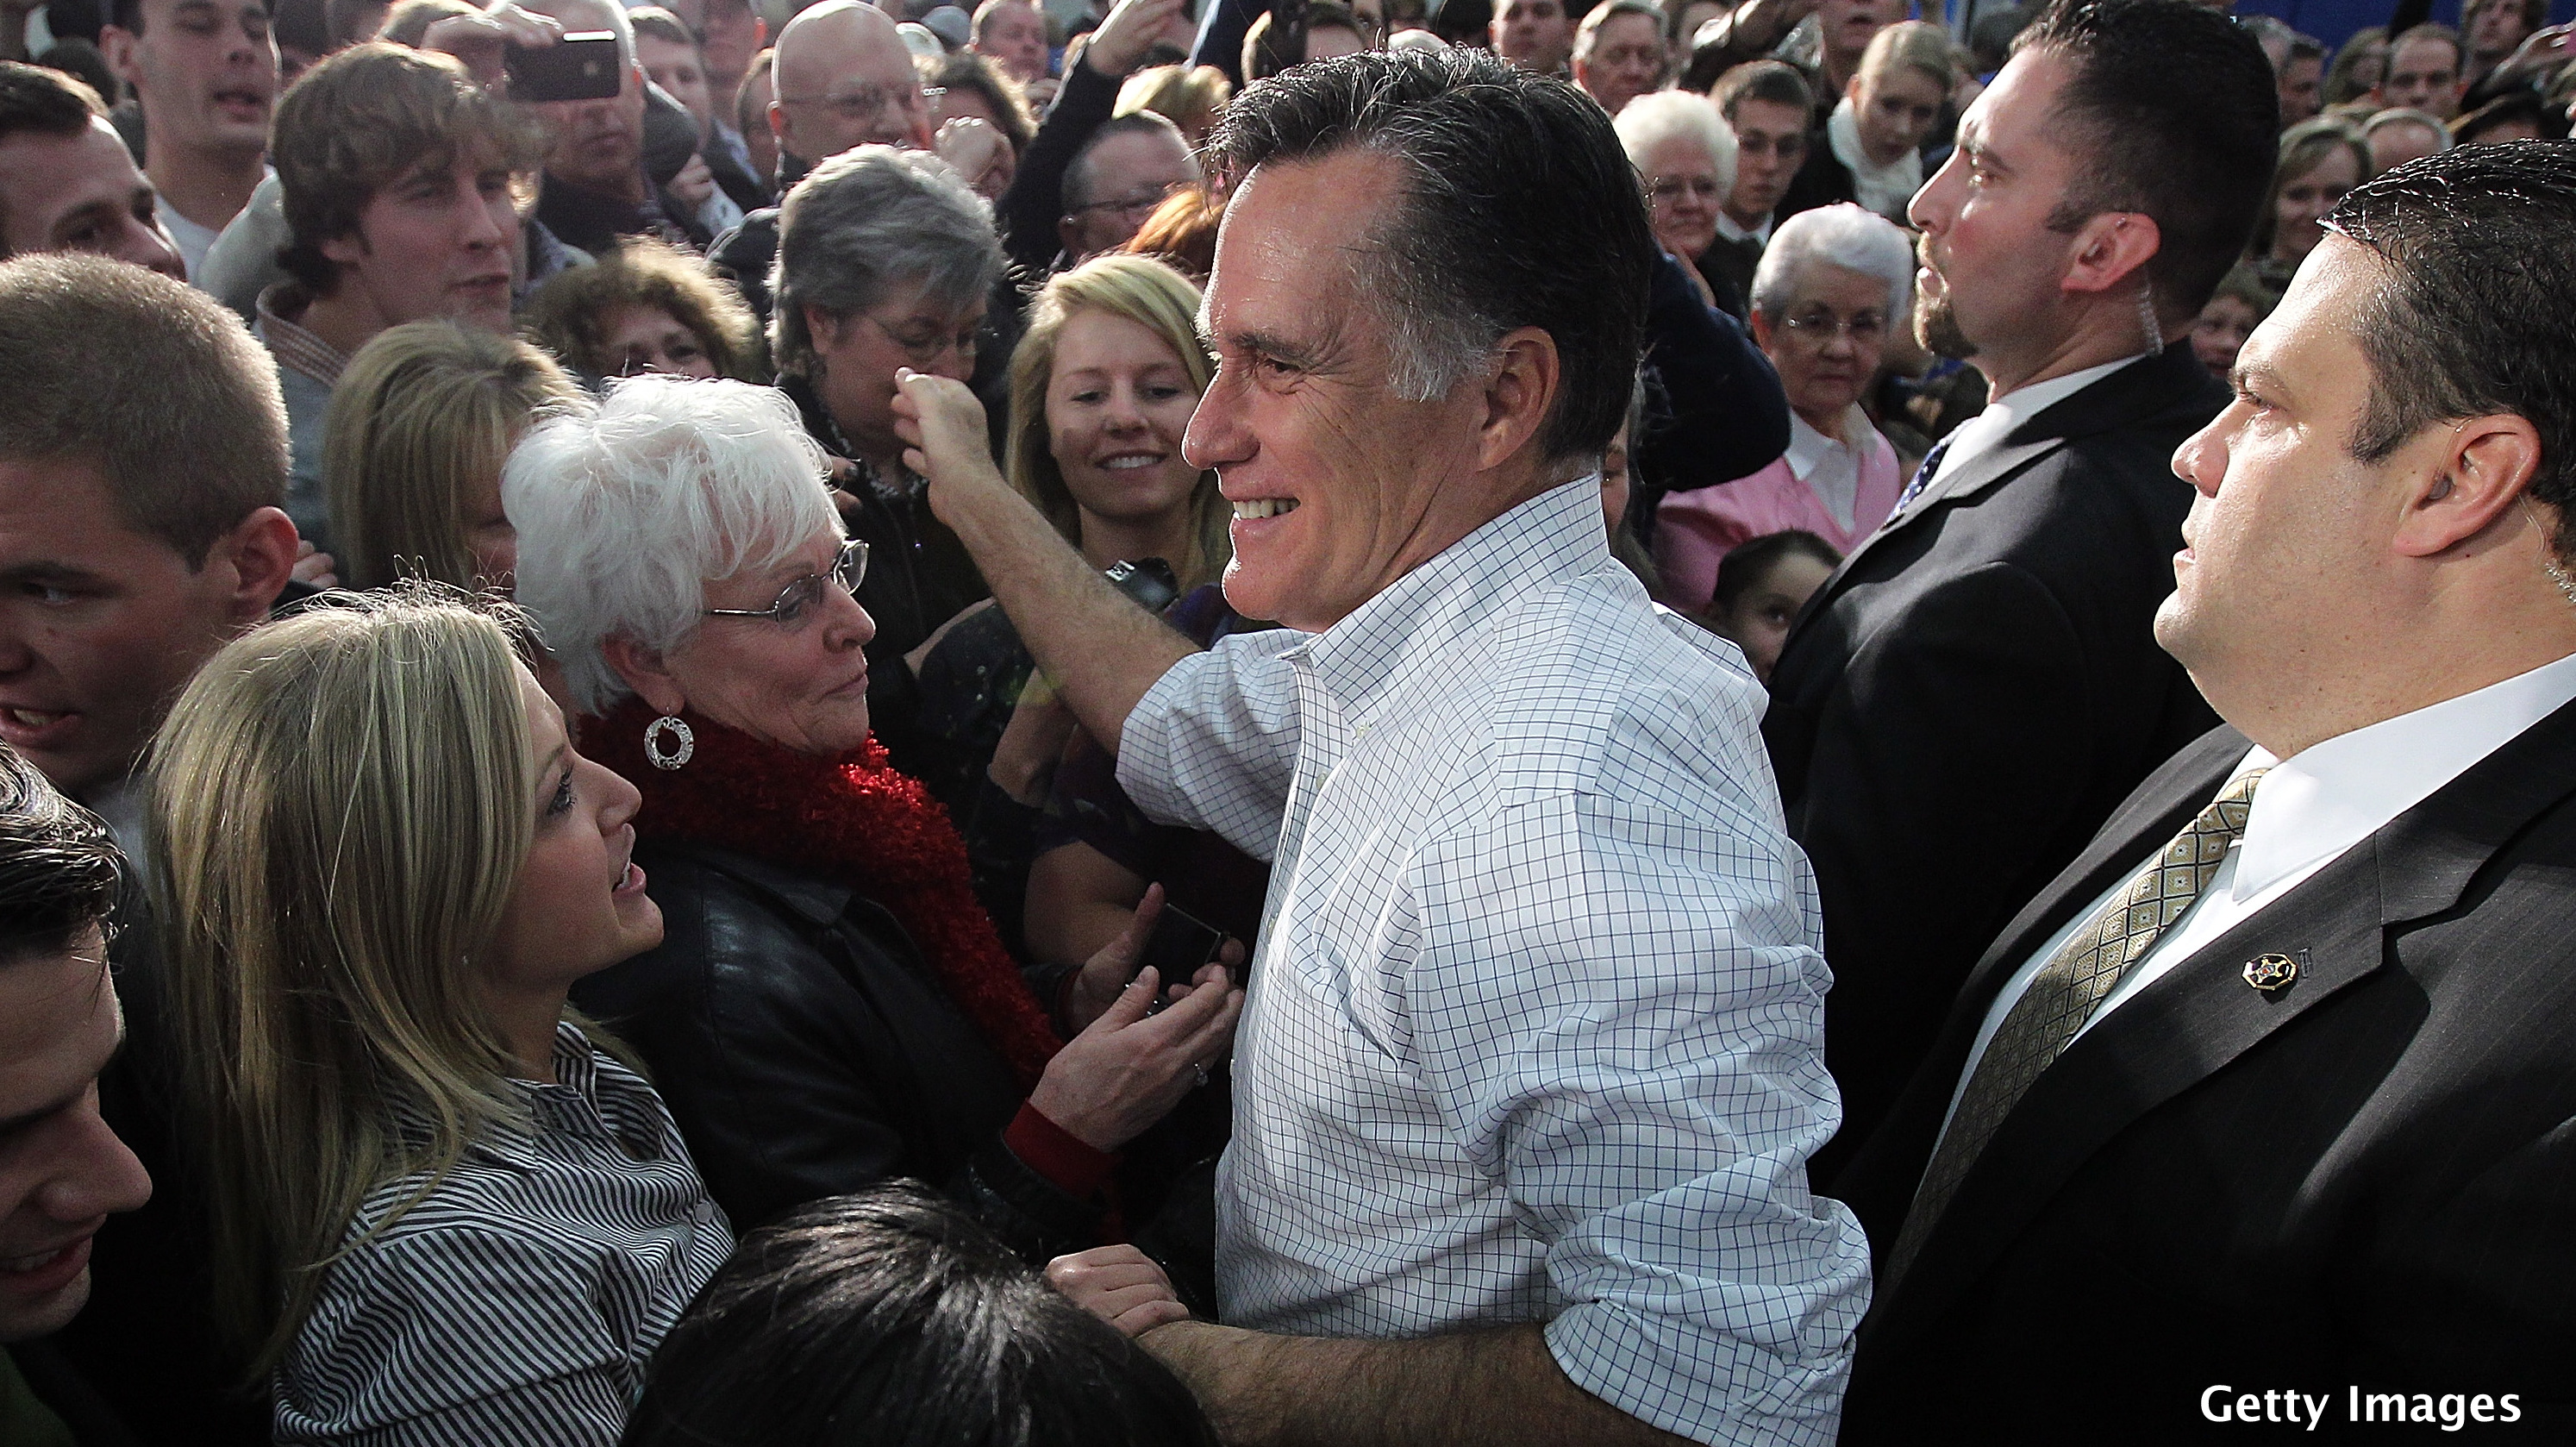 Romney camp: Liberty speech not place for policy